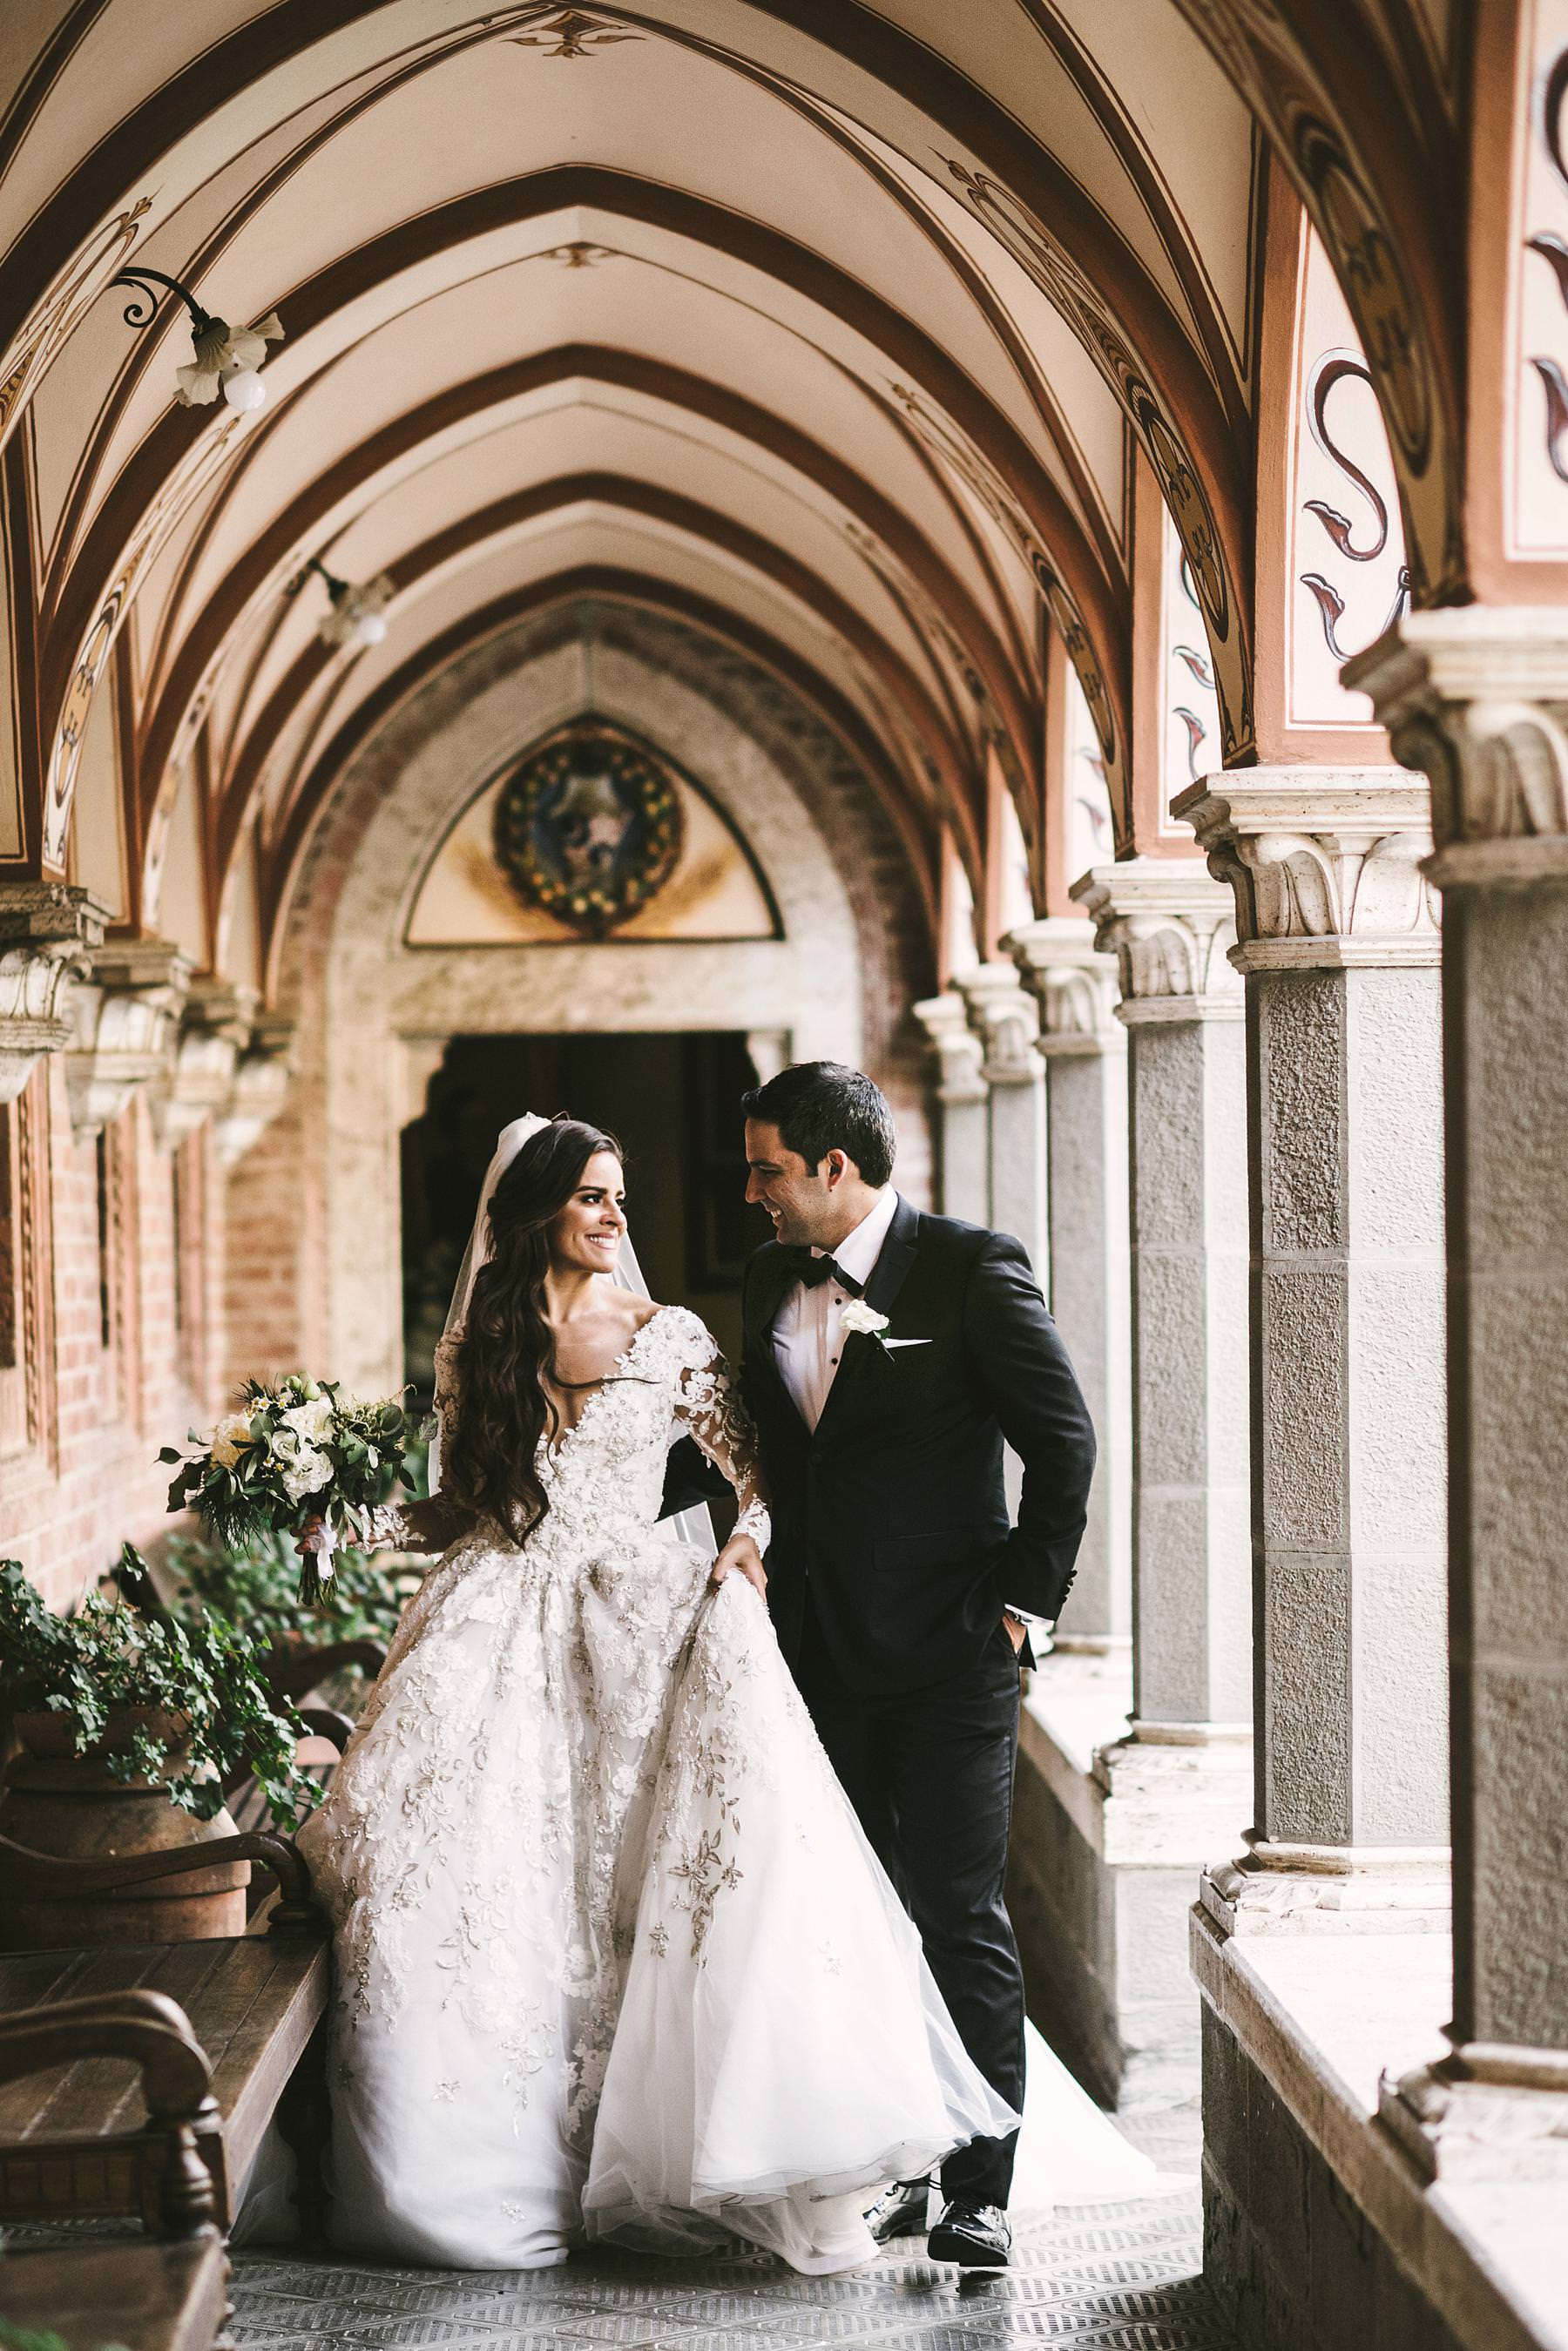 Elegant castle destination wedding in Tuscany countryside at Valenzano near Arezzo